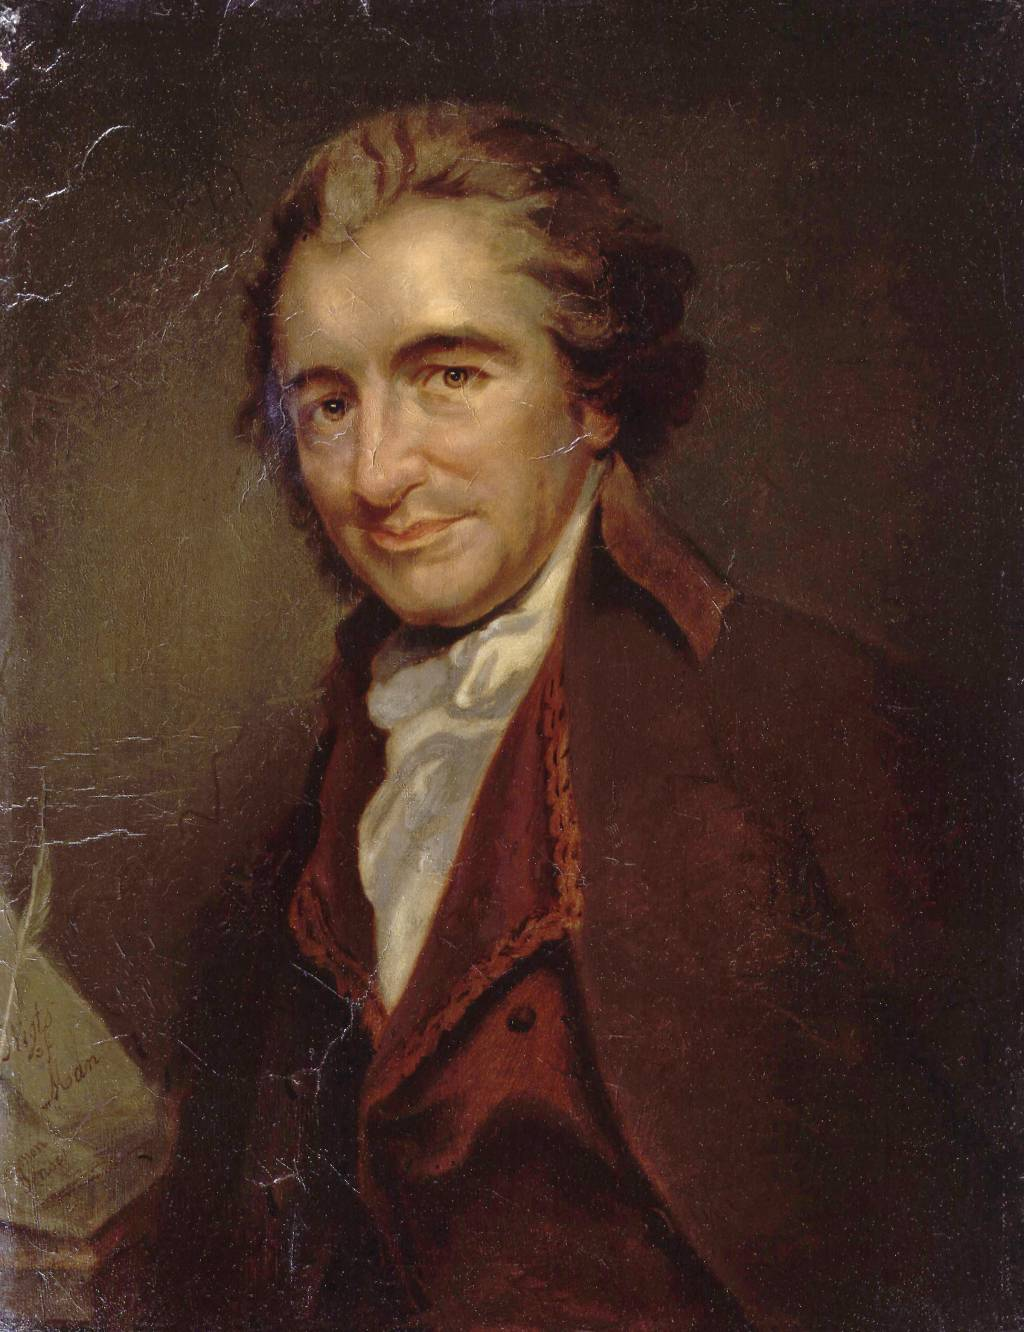 an essay analyzing thomas paine s common sense and the effect it  thomas paine a painting by e milliere 1880 after an engraving by